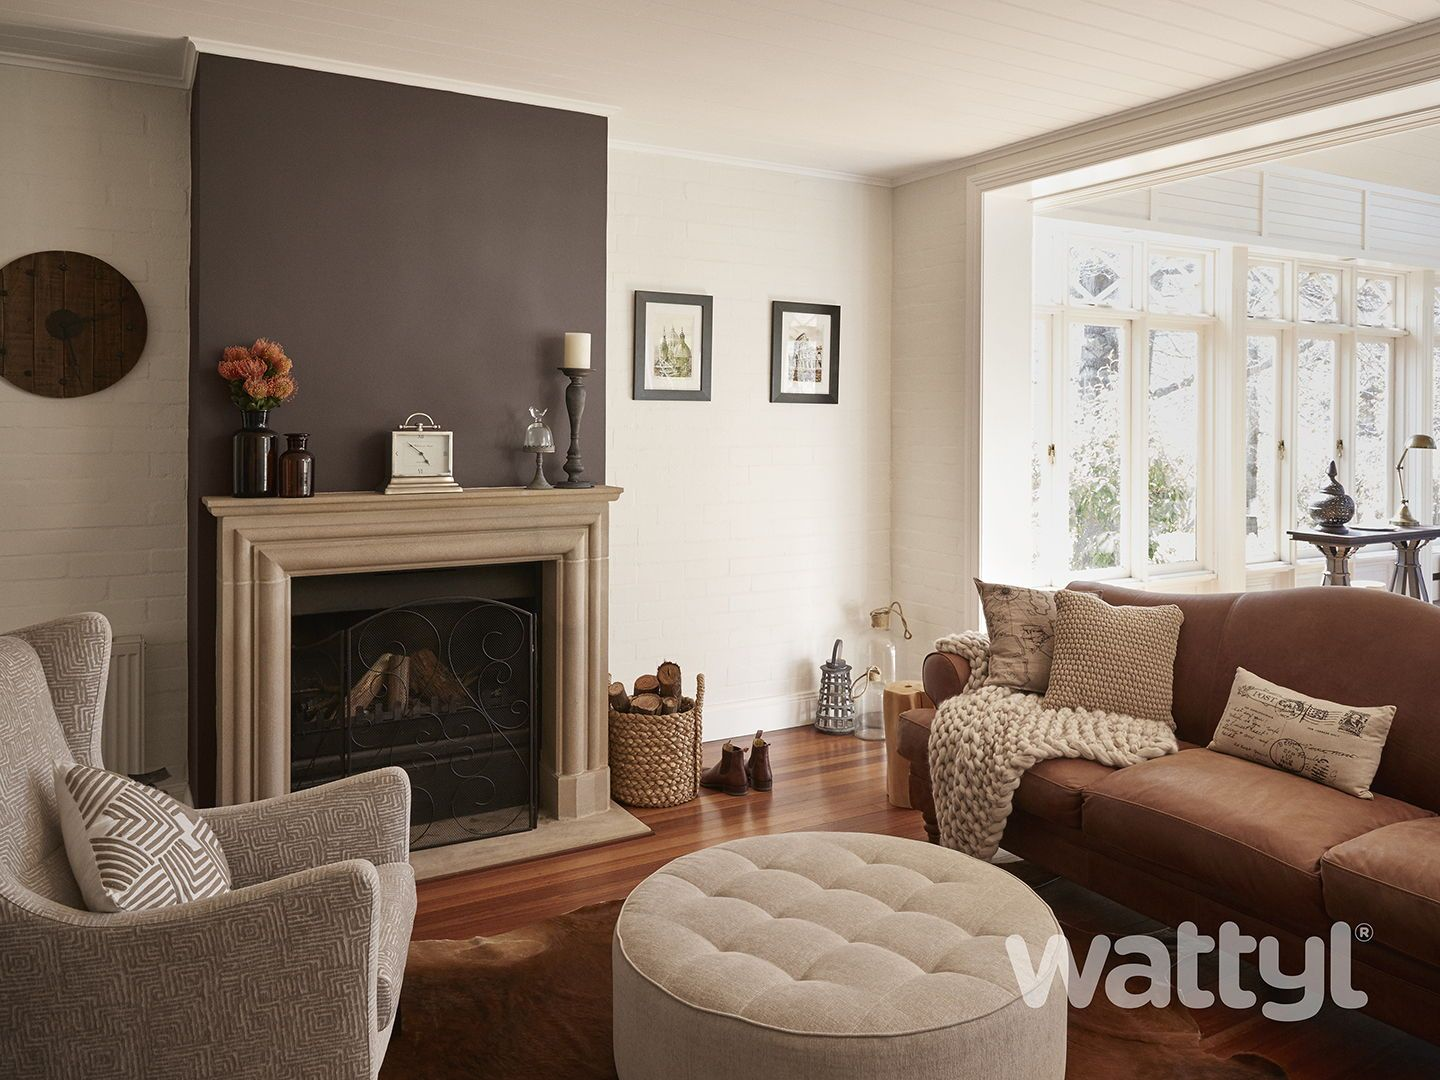 Warm and relaxing Interior colours to inspire your